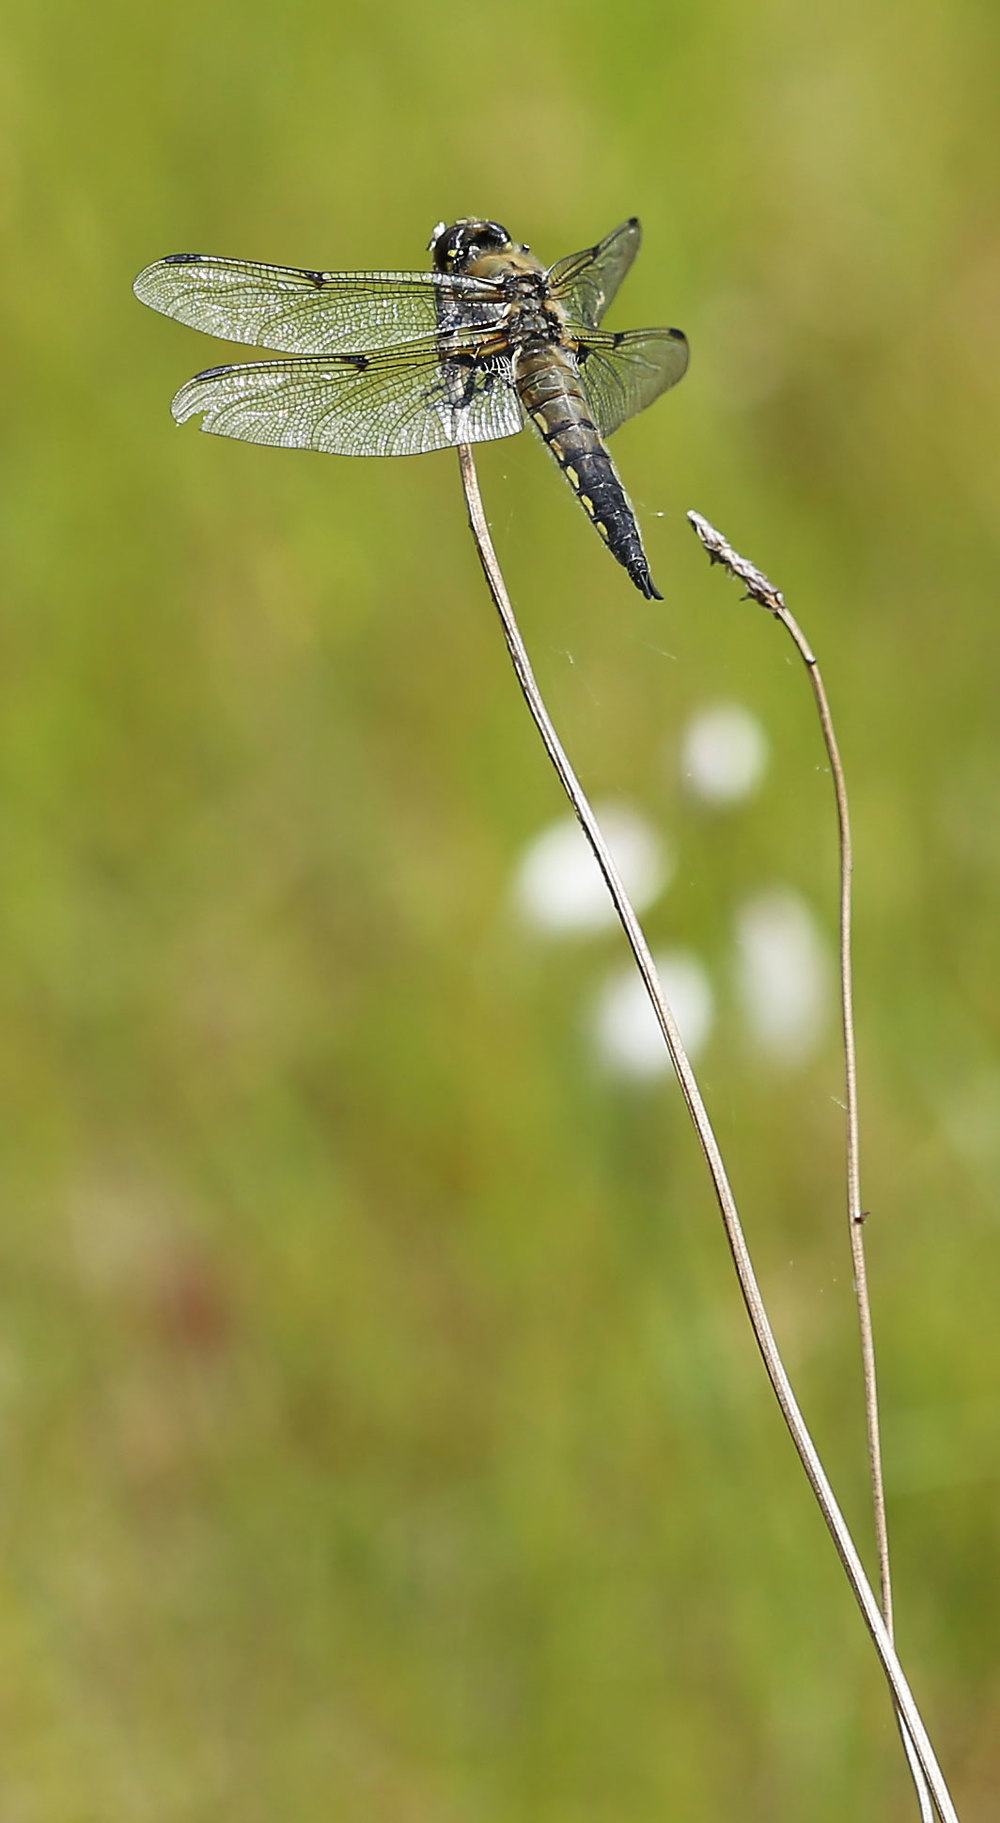 Four-spotted skimmer on an old grass stalk.